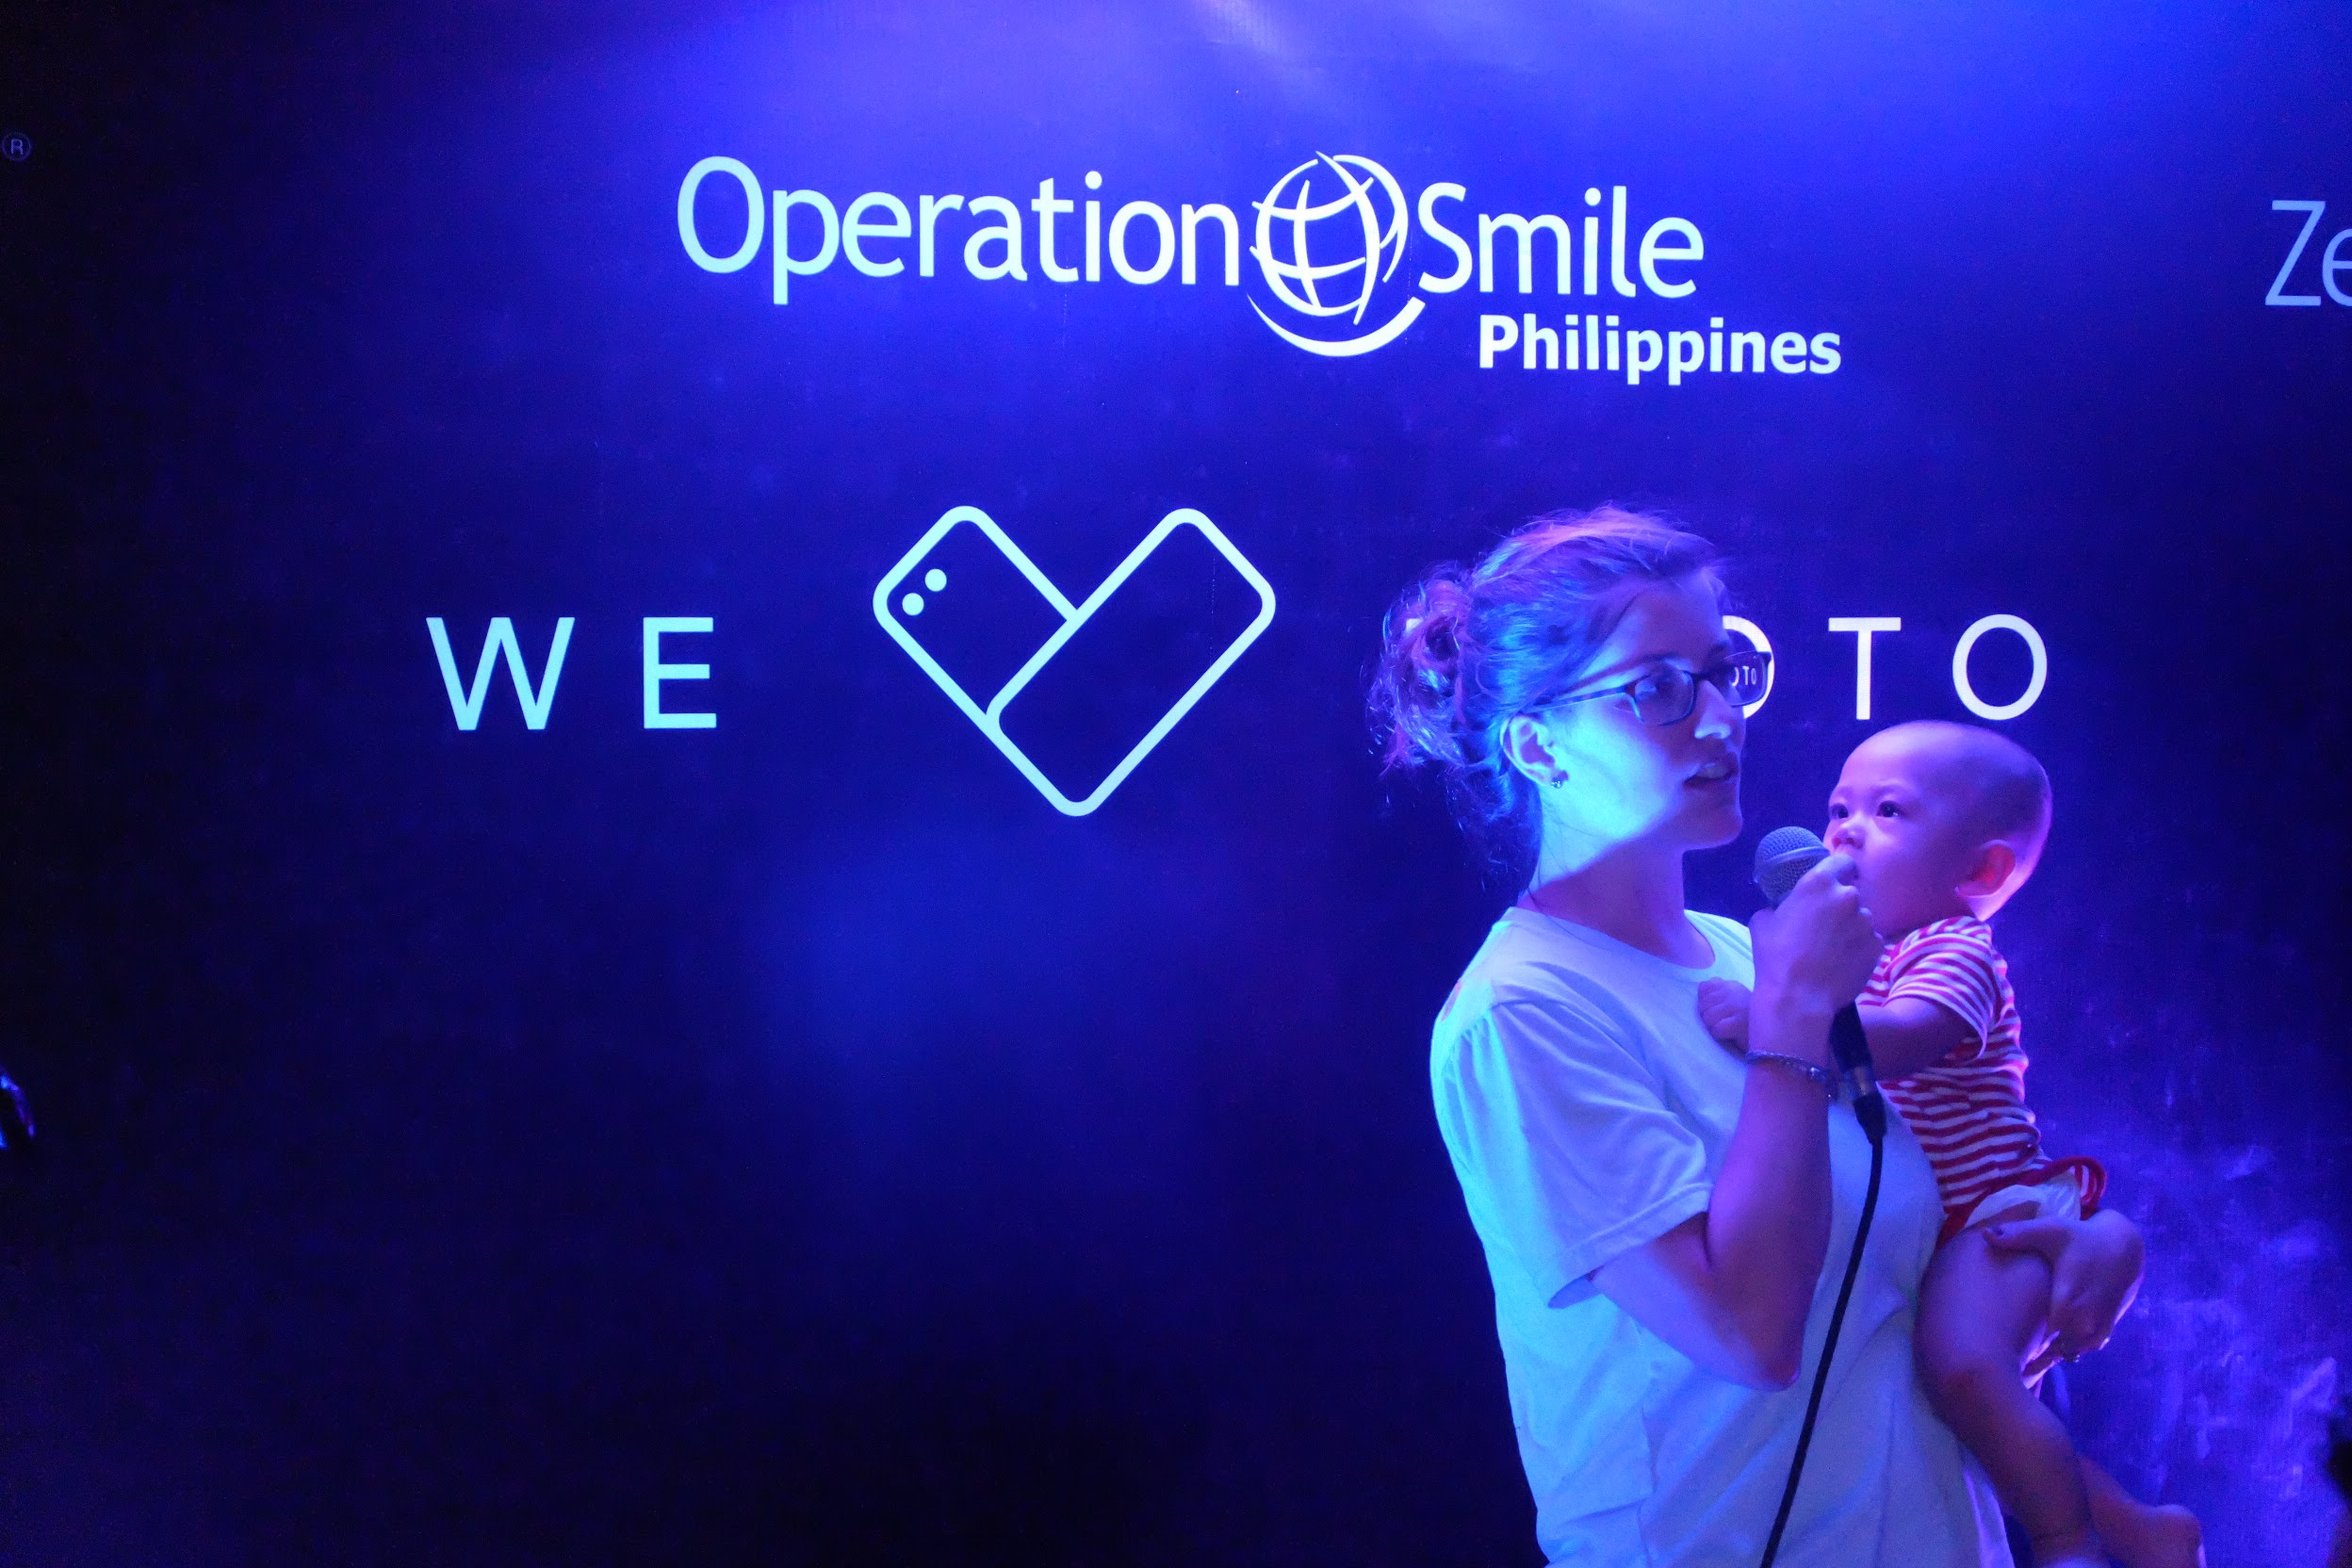 Christine Lu, Director of Programs for Operation Smile Philippines shares her sentiments to the ASUS Philippines and the media in a thanksgiving dinner at Iloilo with her son, Ari Lu.